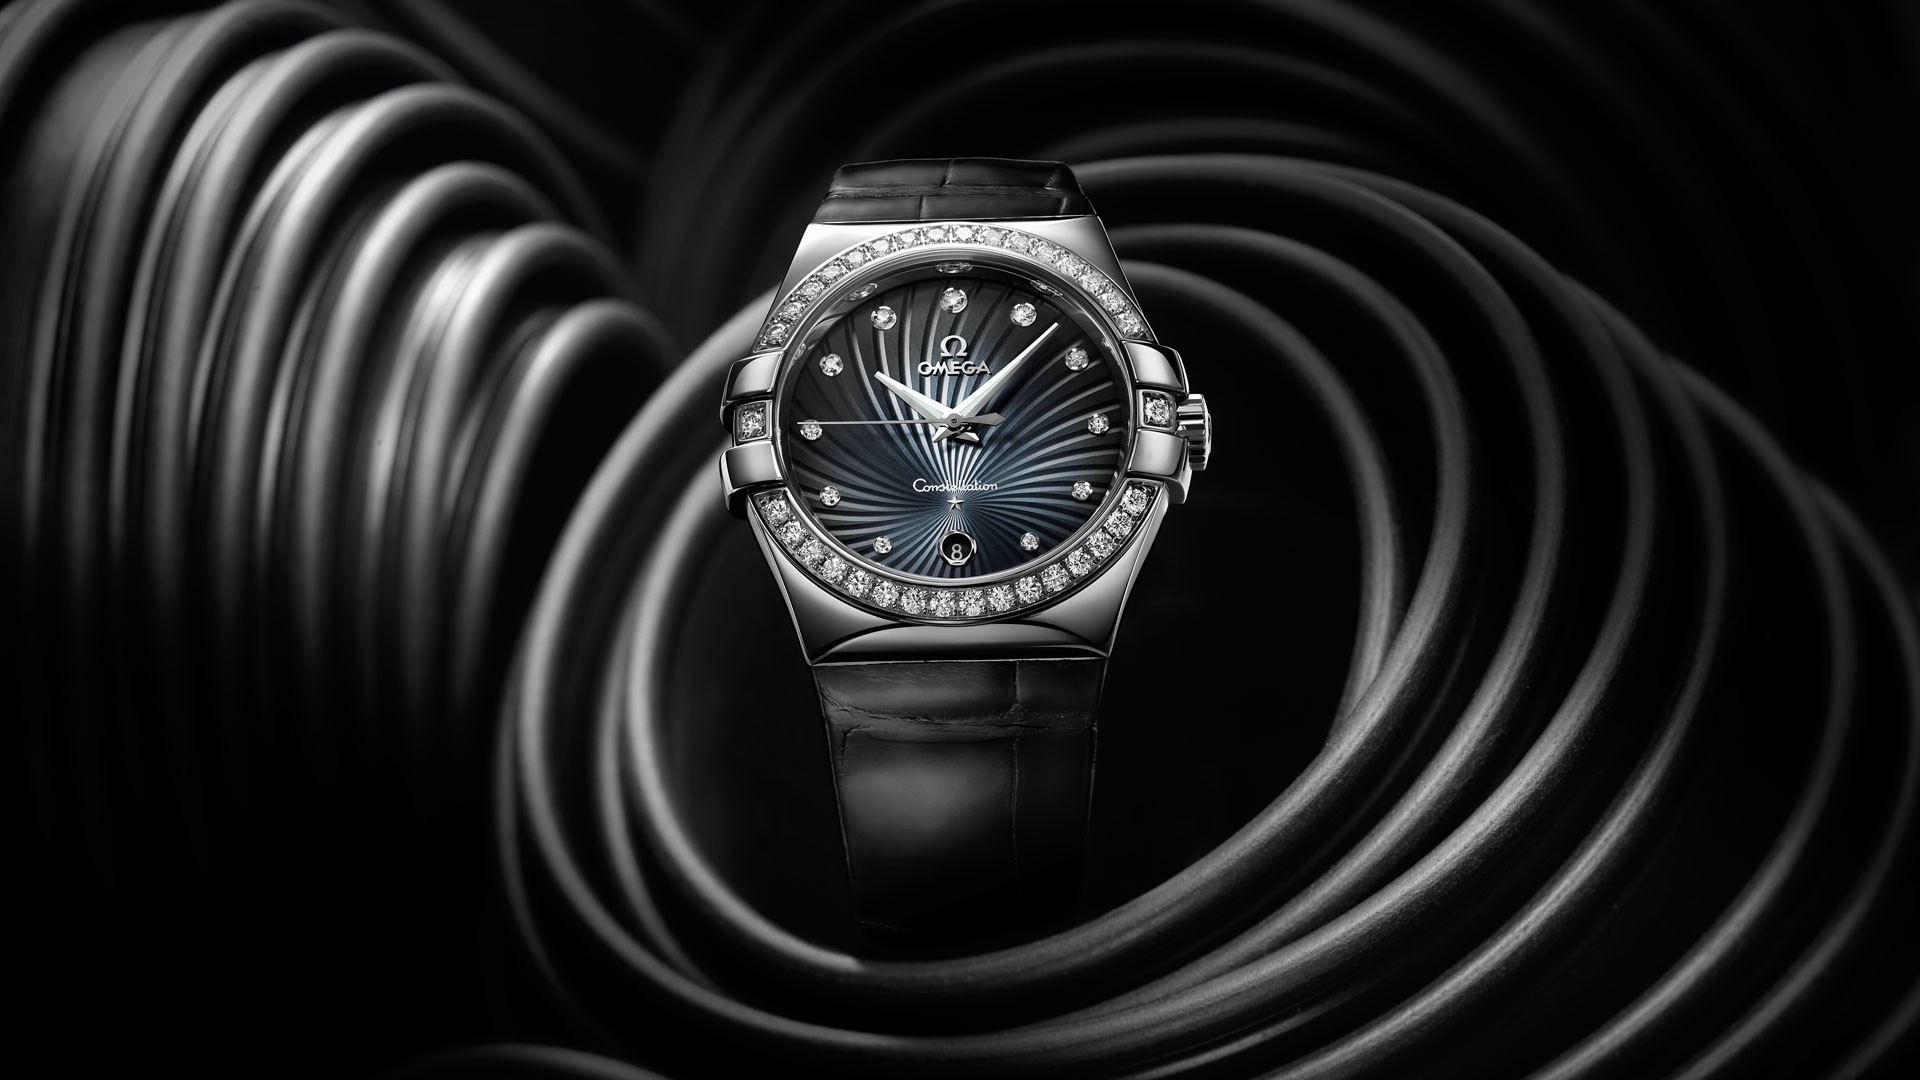 1920x1080 Constellation omega watches wallpaper